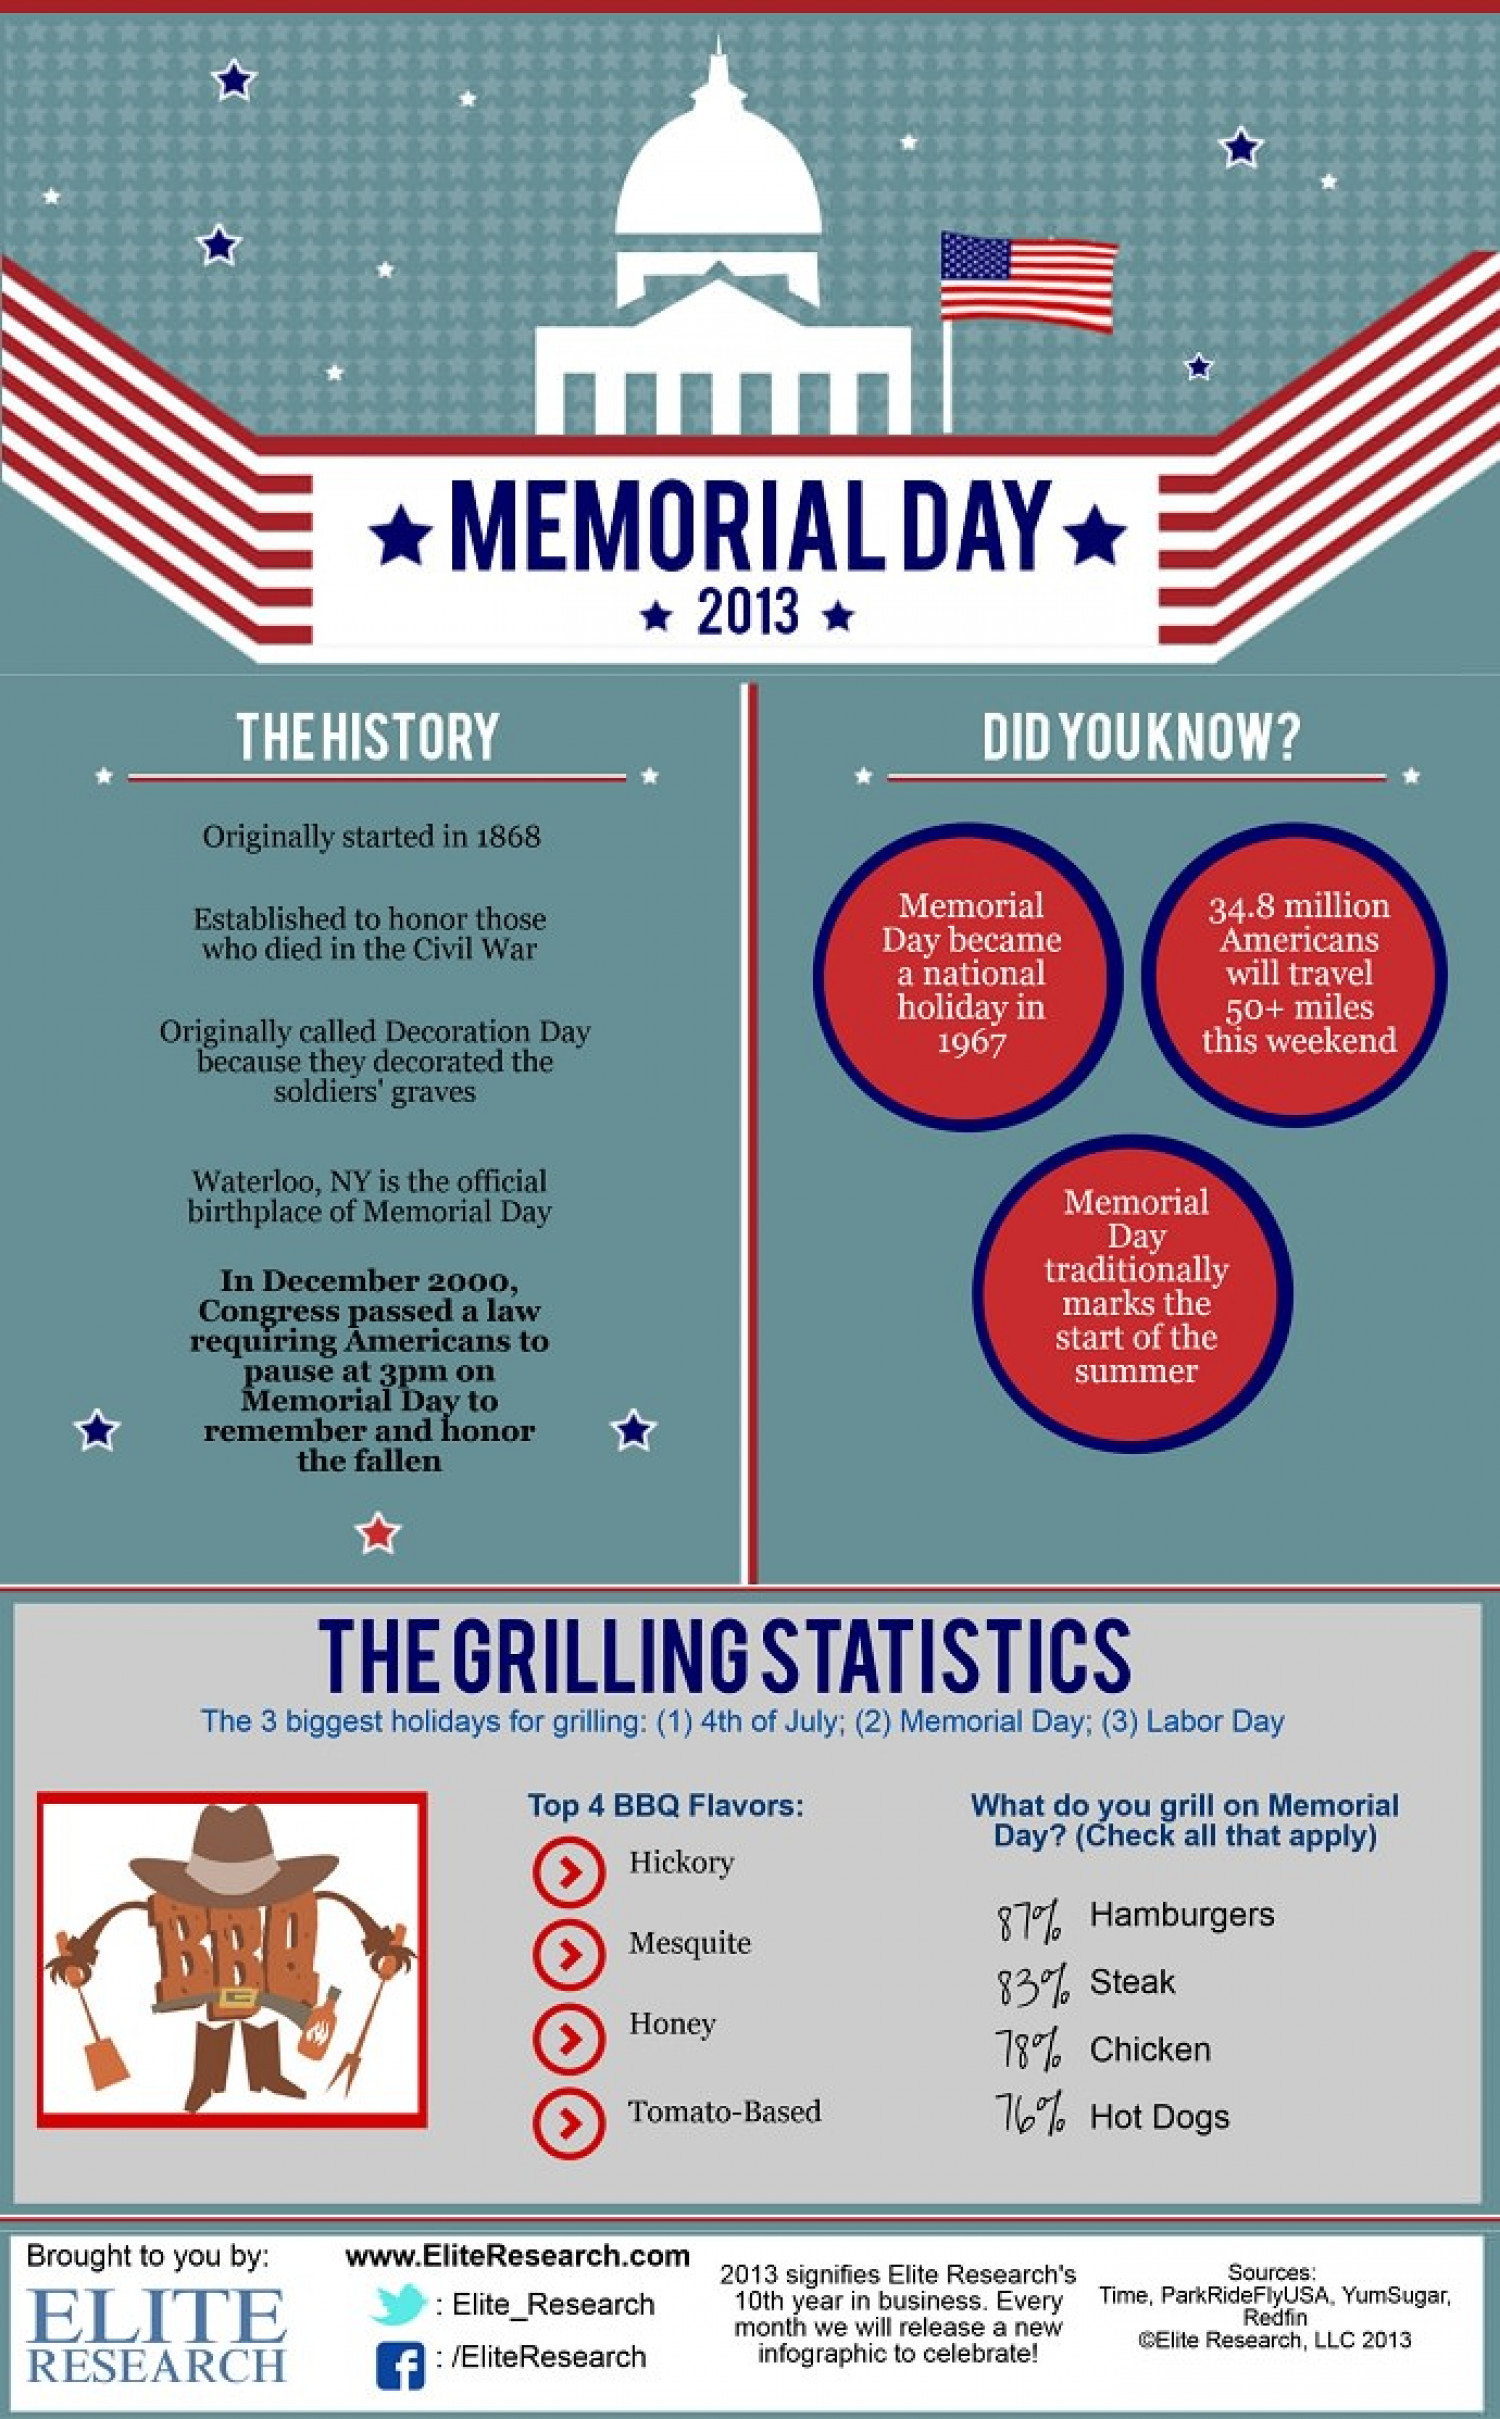 Memorial Day 2013 Infographic